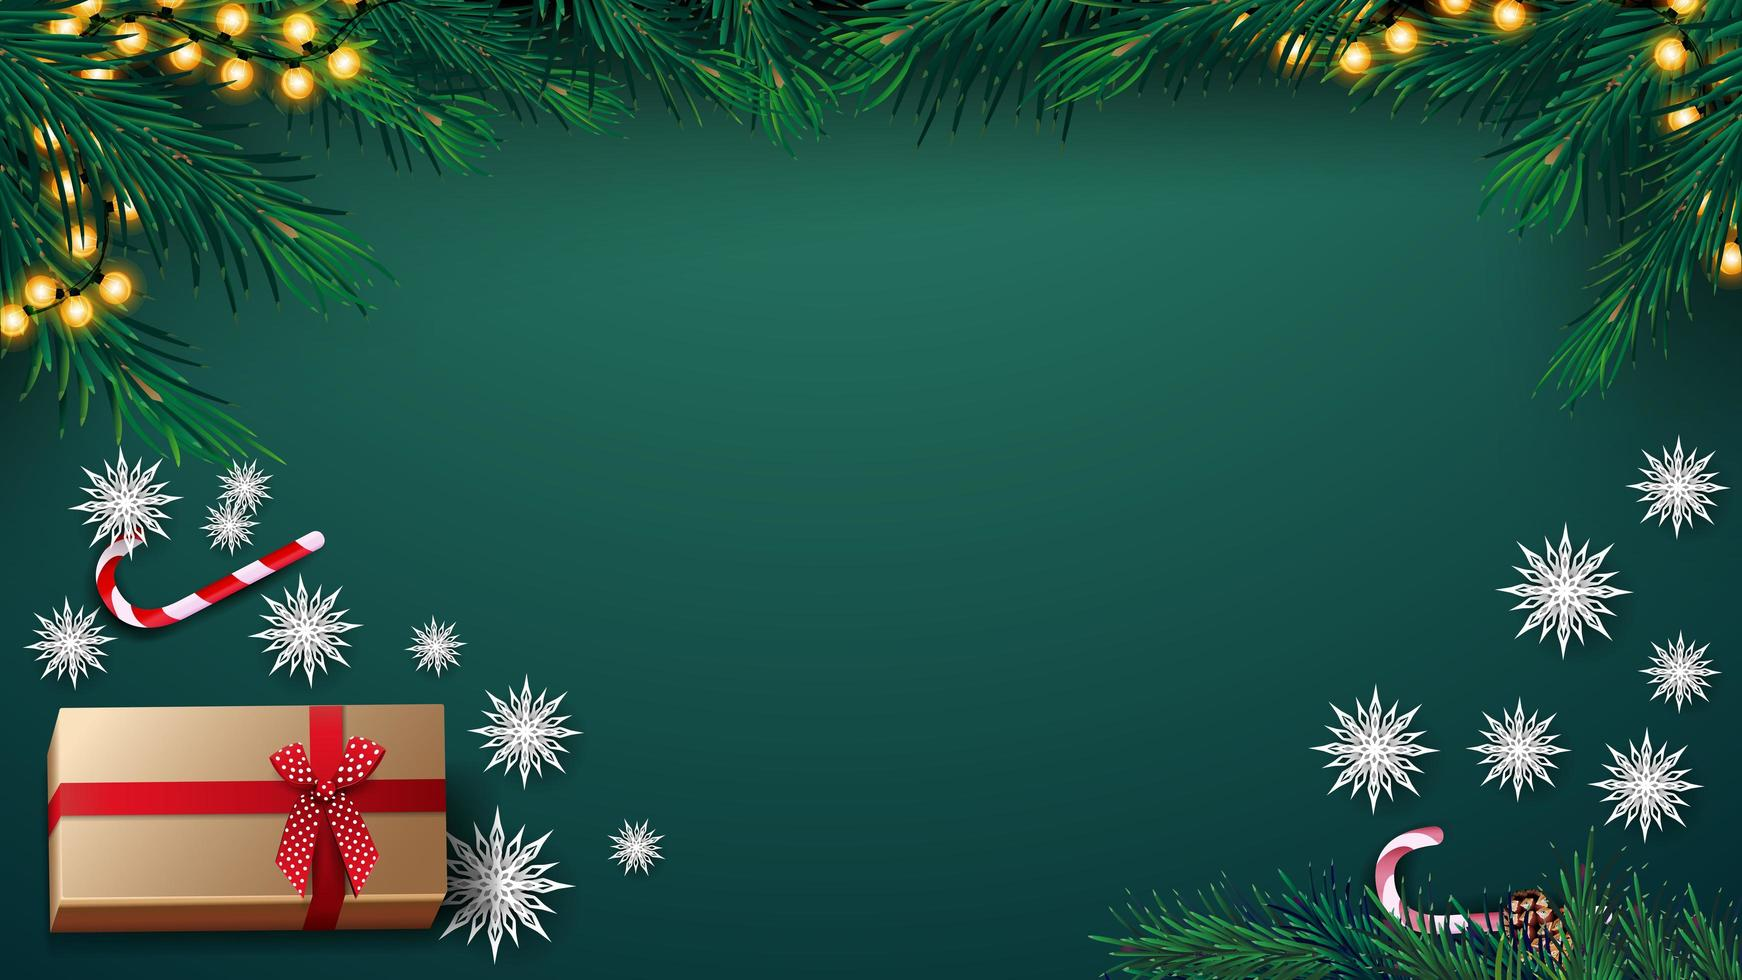 Christmas green background with garland, Christmas tree, present, paper snowflakes and candy can, top view vector